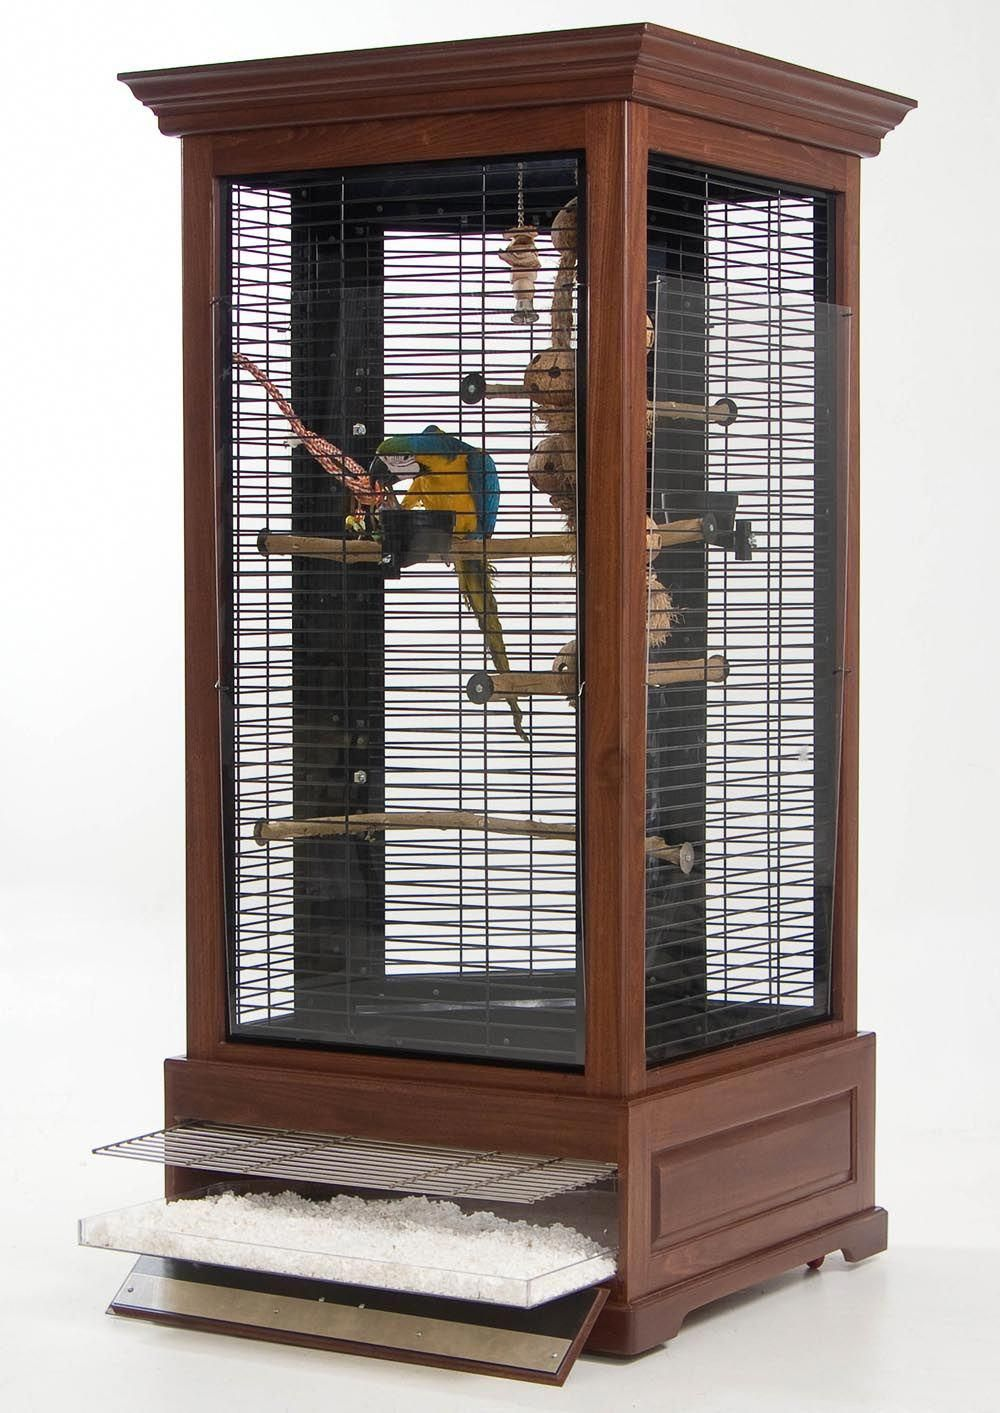 My Kinda Bird Cage For Parrots That Is Anyways More Like A Furniture Style Then Just Metal Wire Parrotcageideas